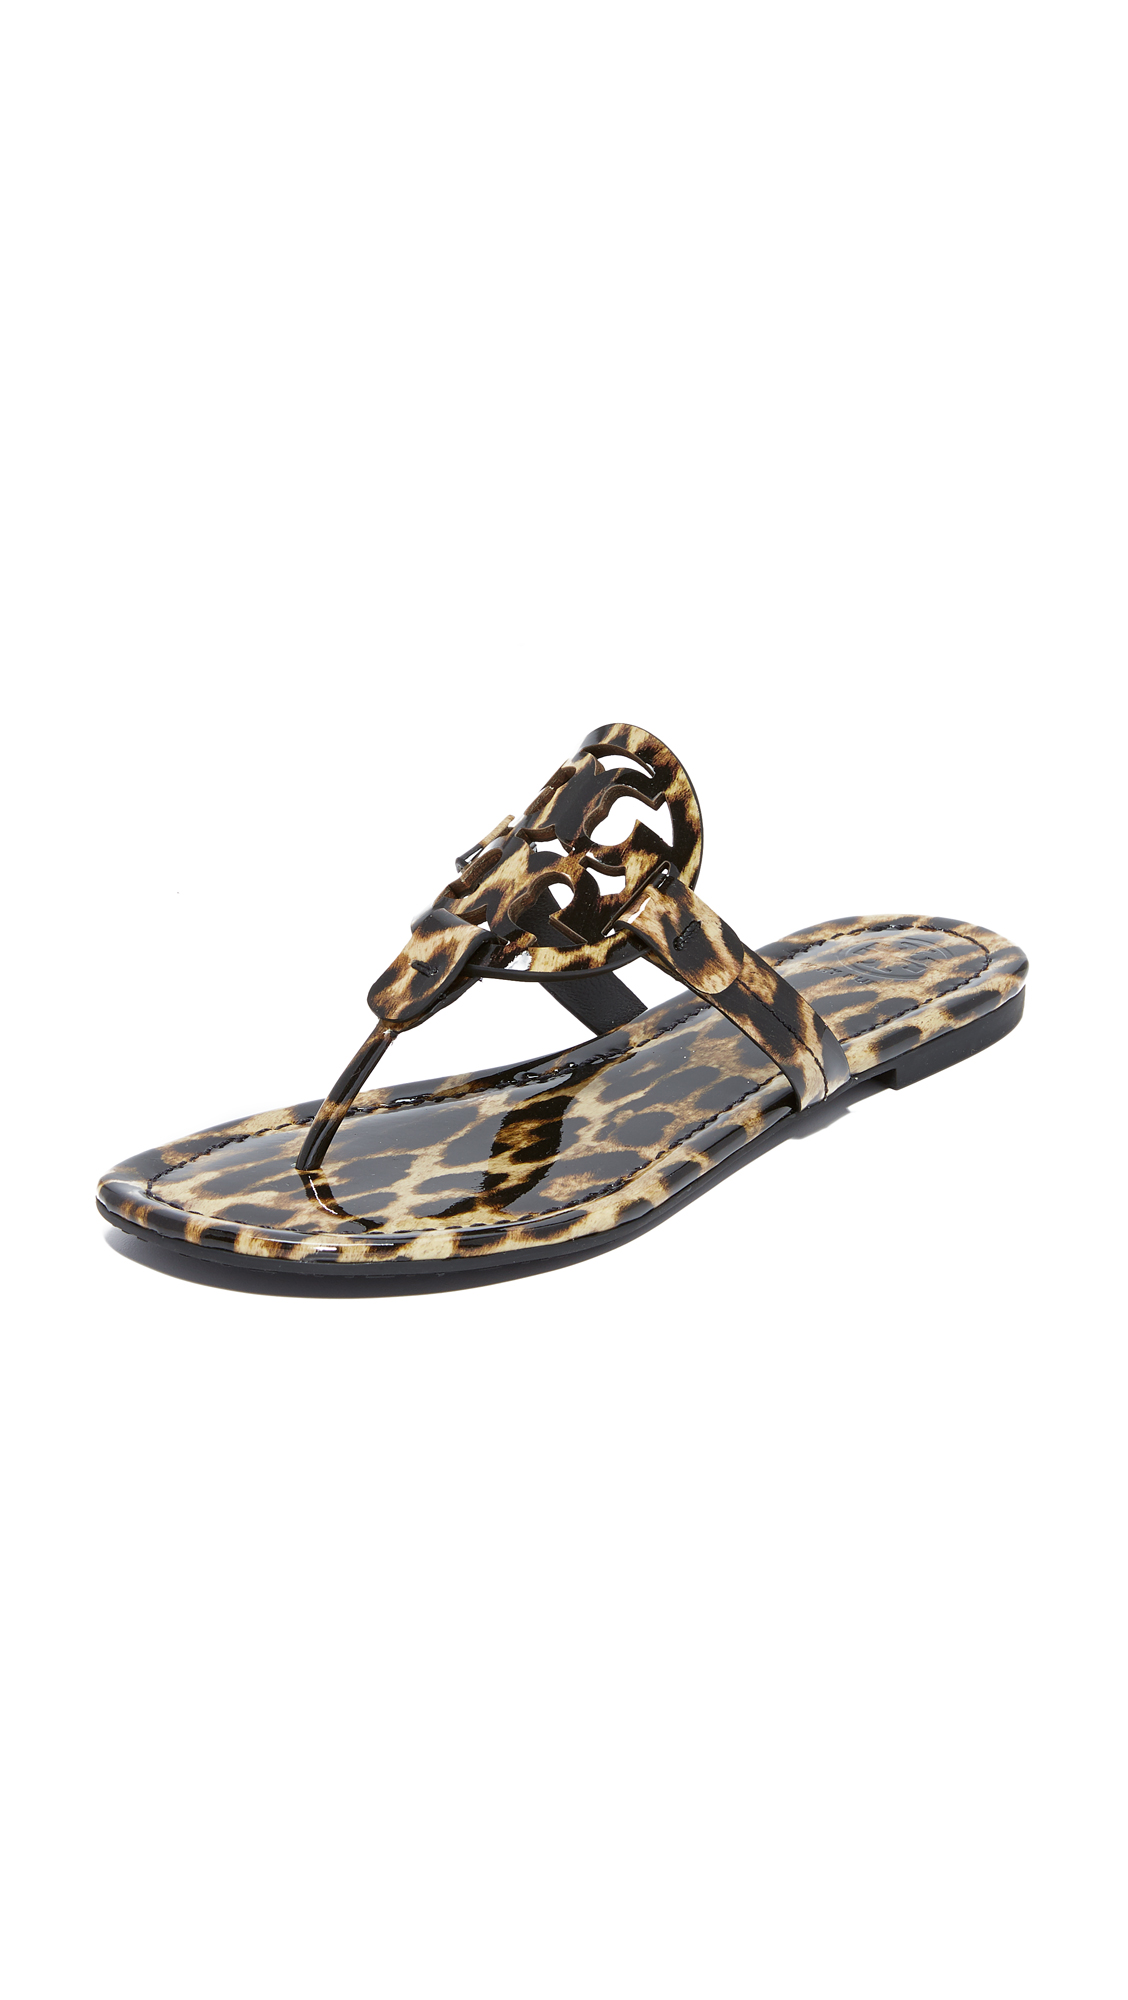 Tory Burch Miller Thong Sandals - Leopard